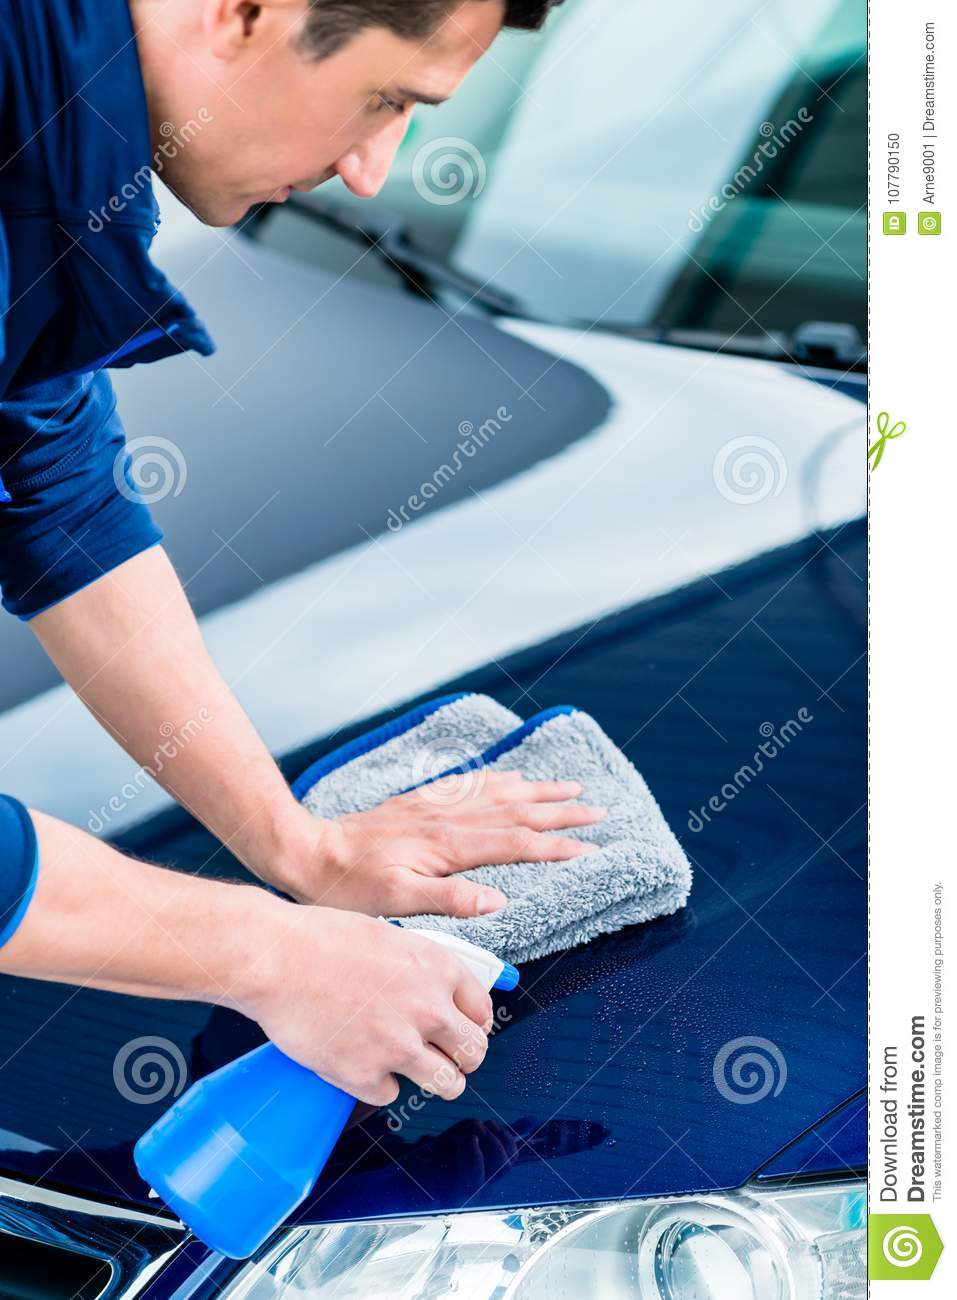 Hands cleaning car with spray cleaner and microfiber towel